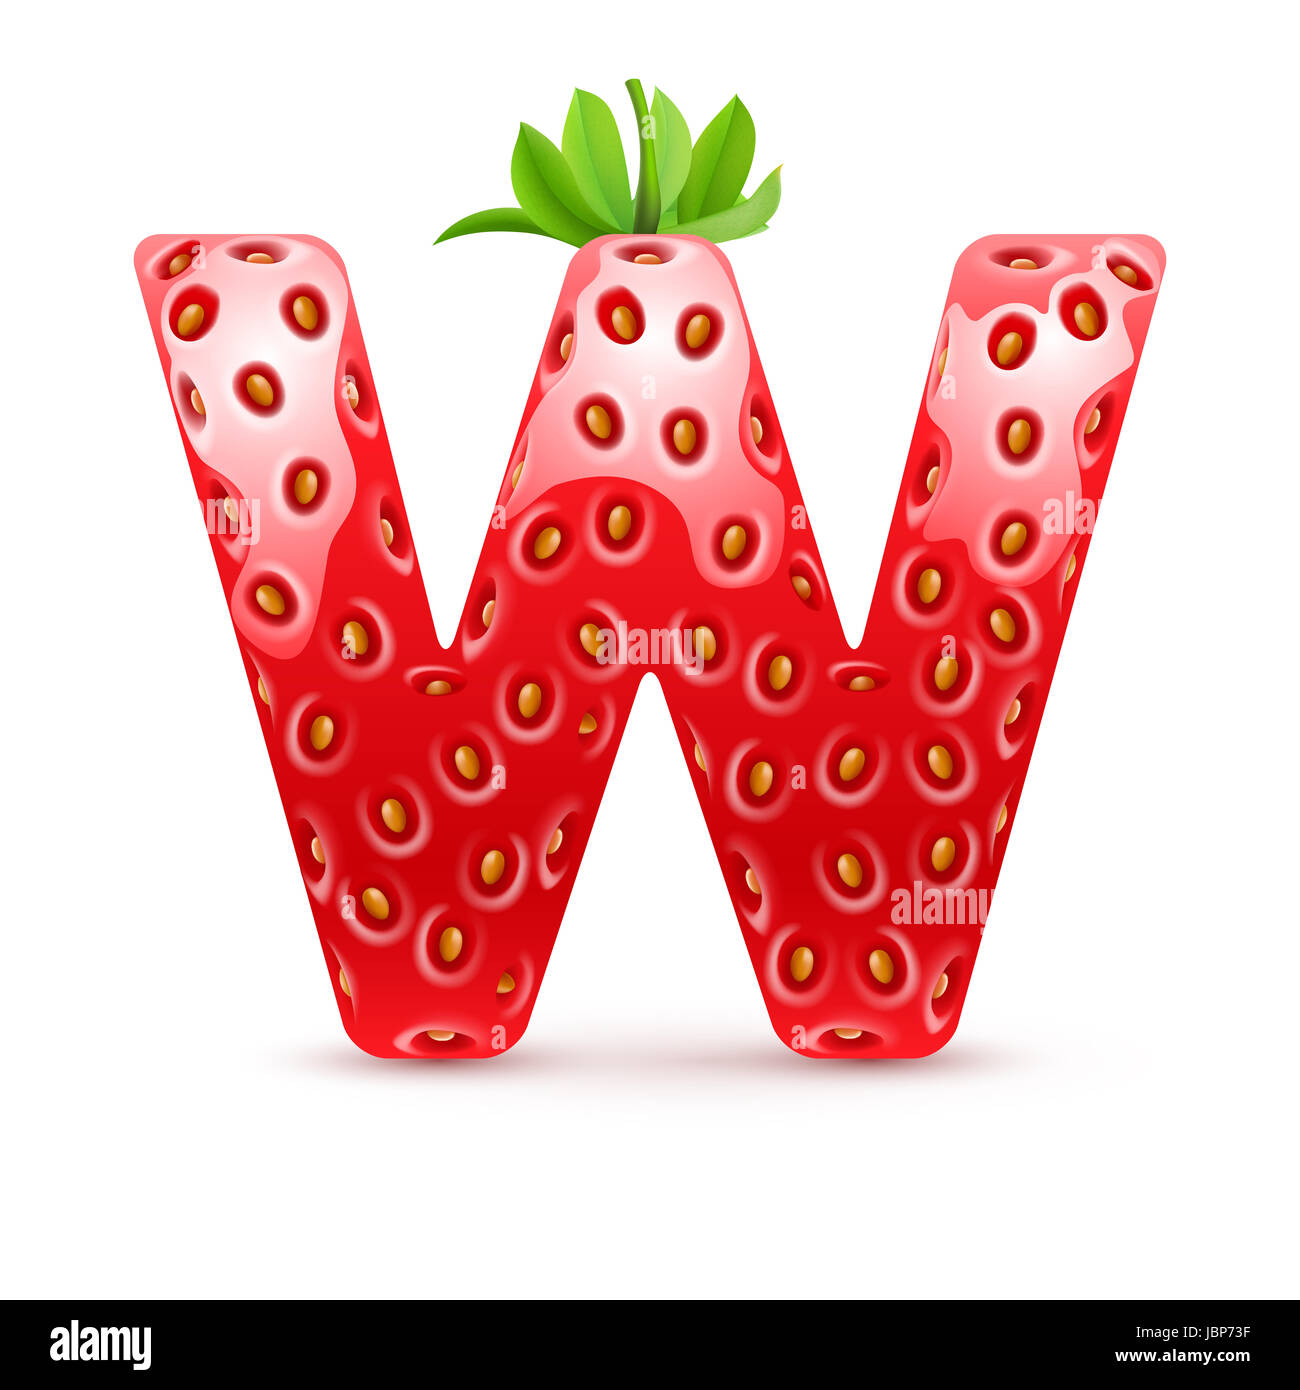 Letter W In Strawberry Style With Green Leaves